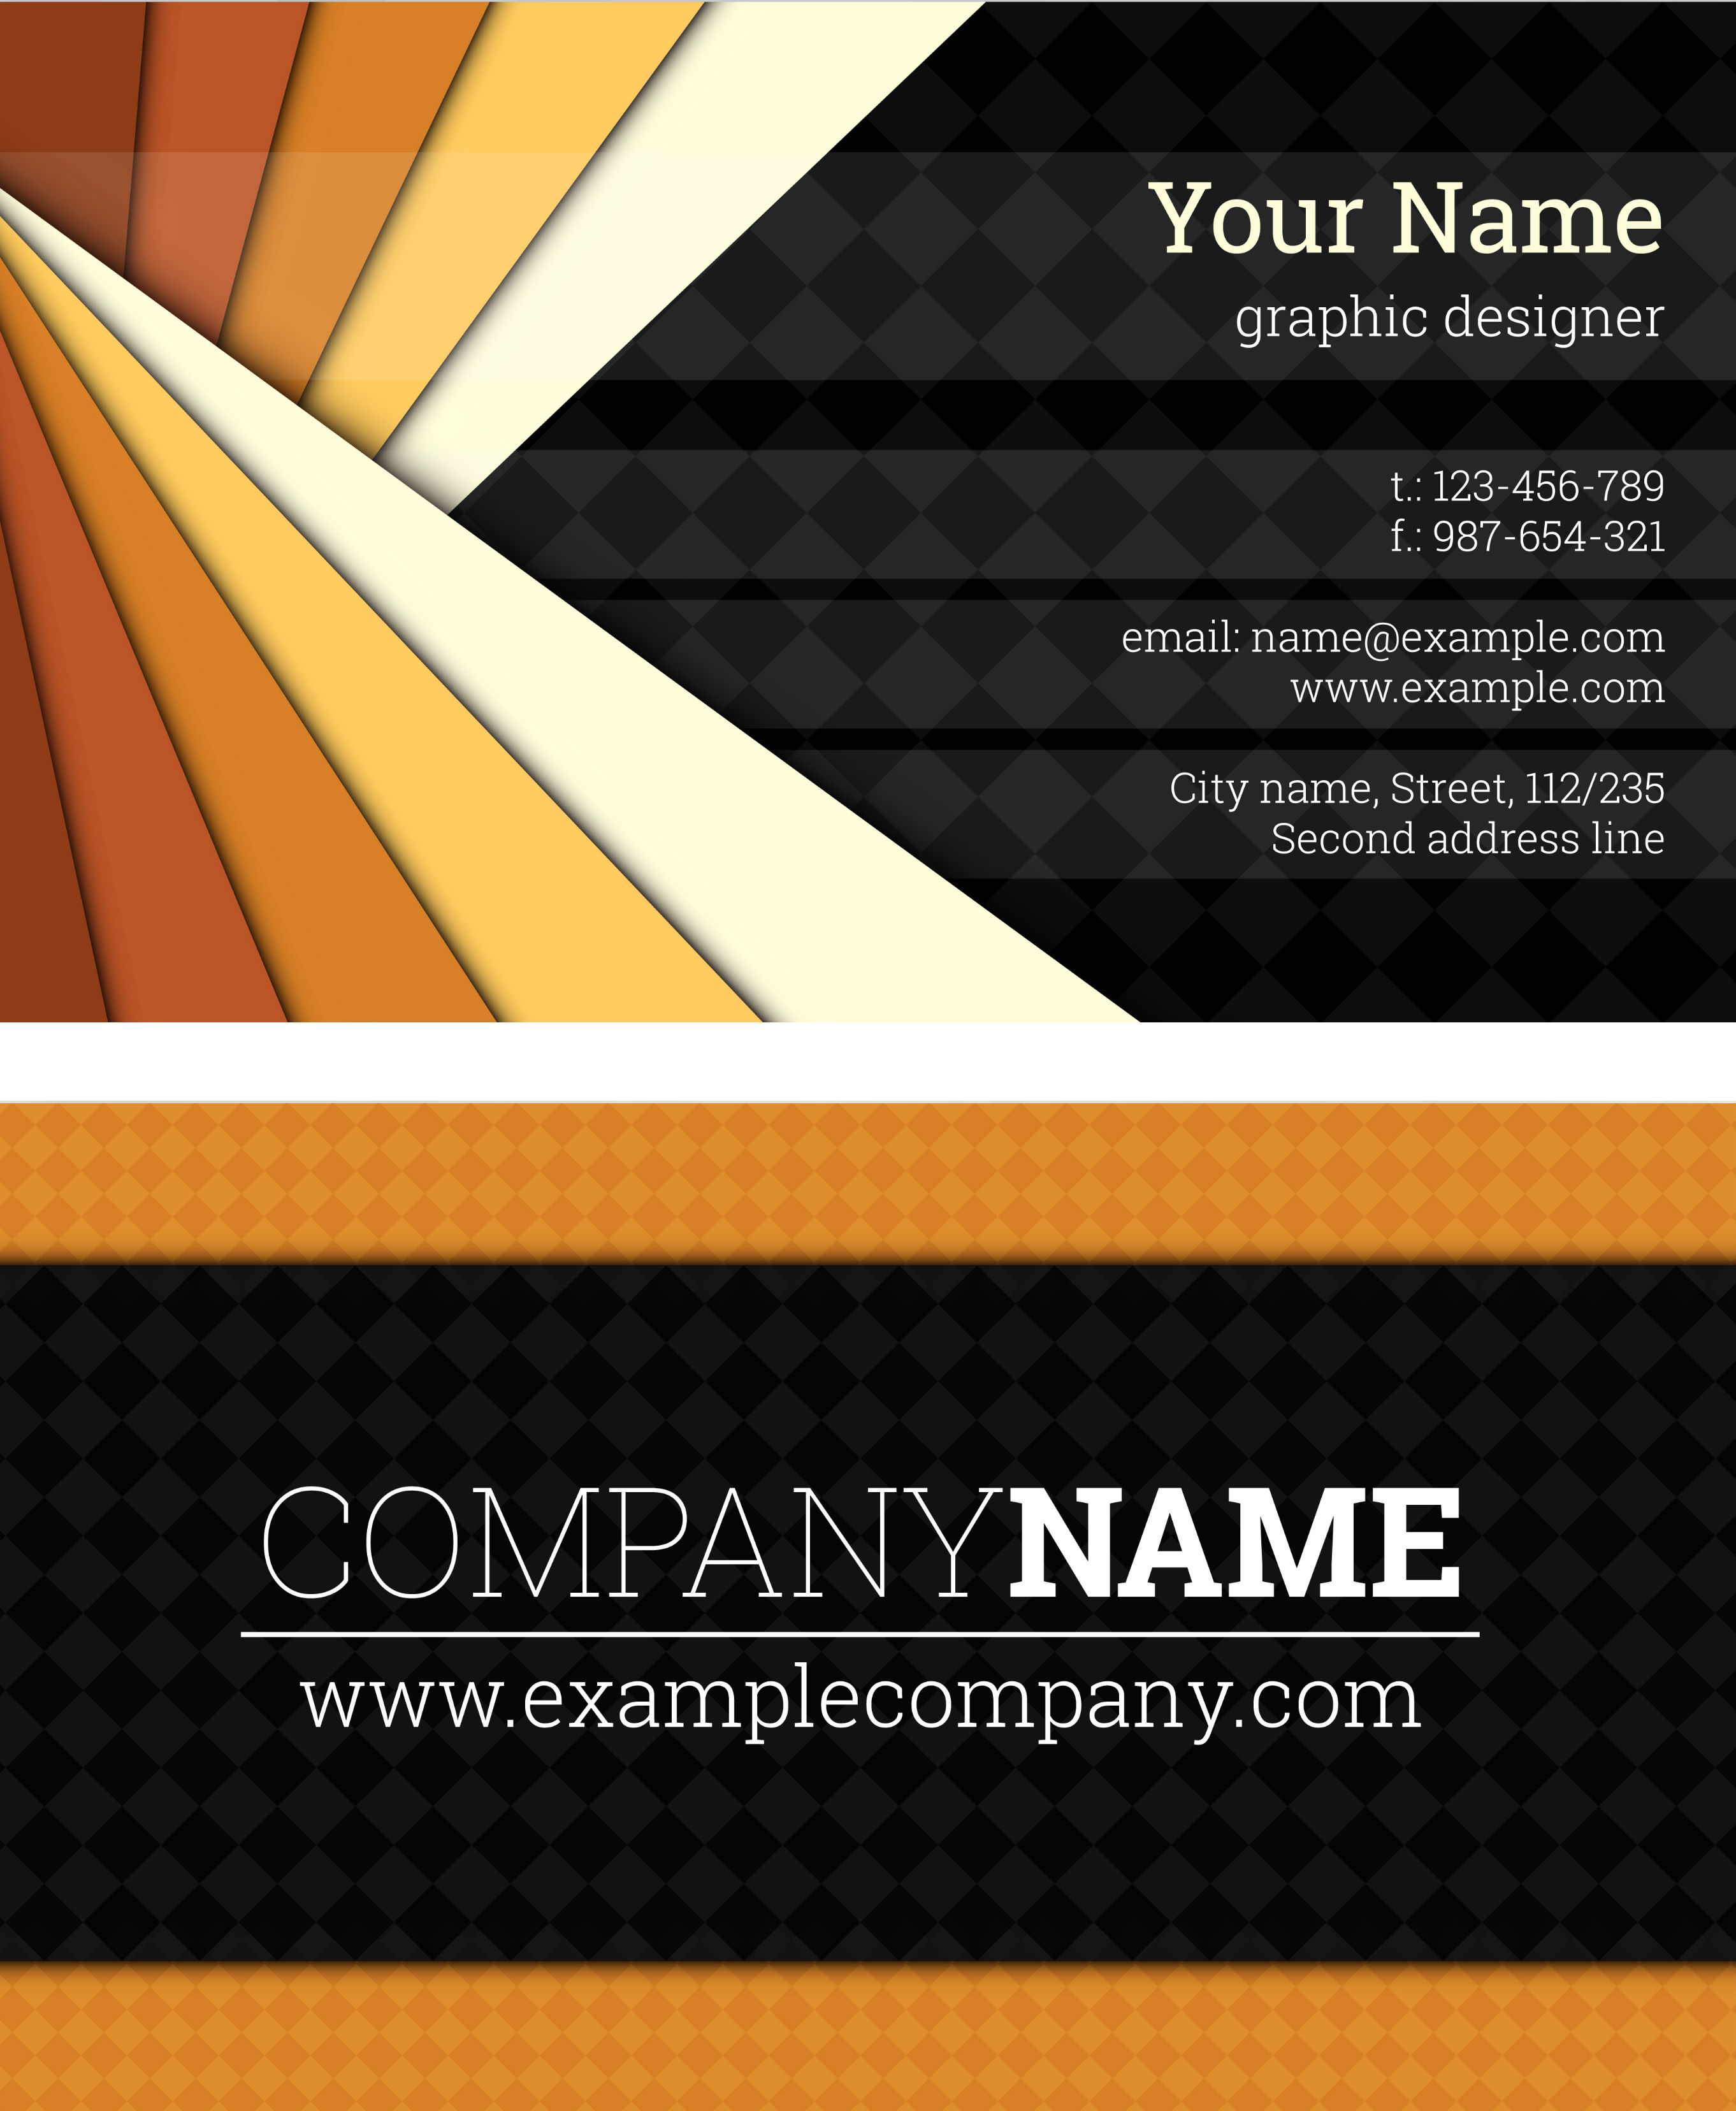 Name Card Design Structure